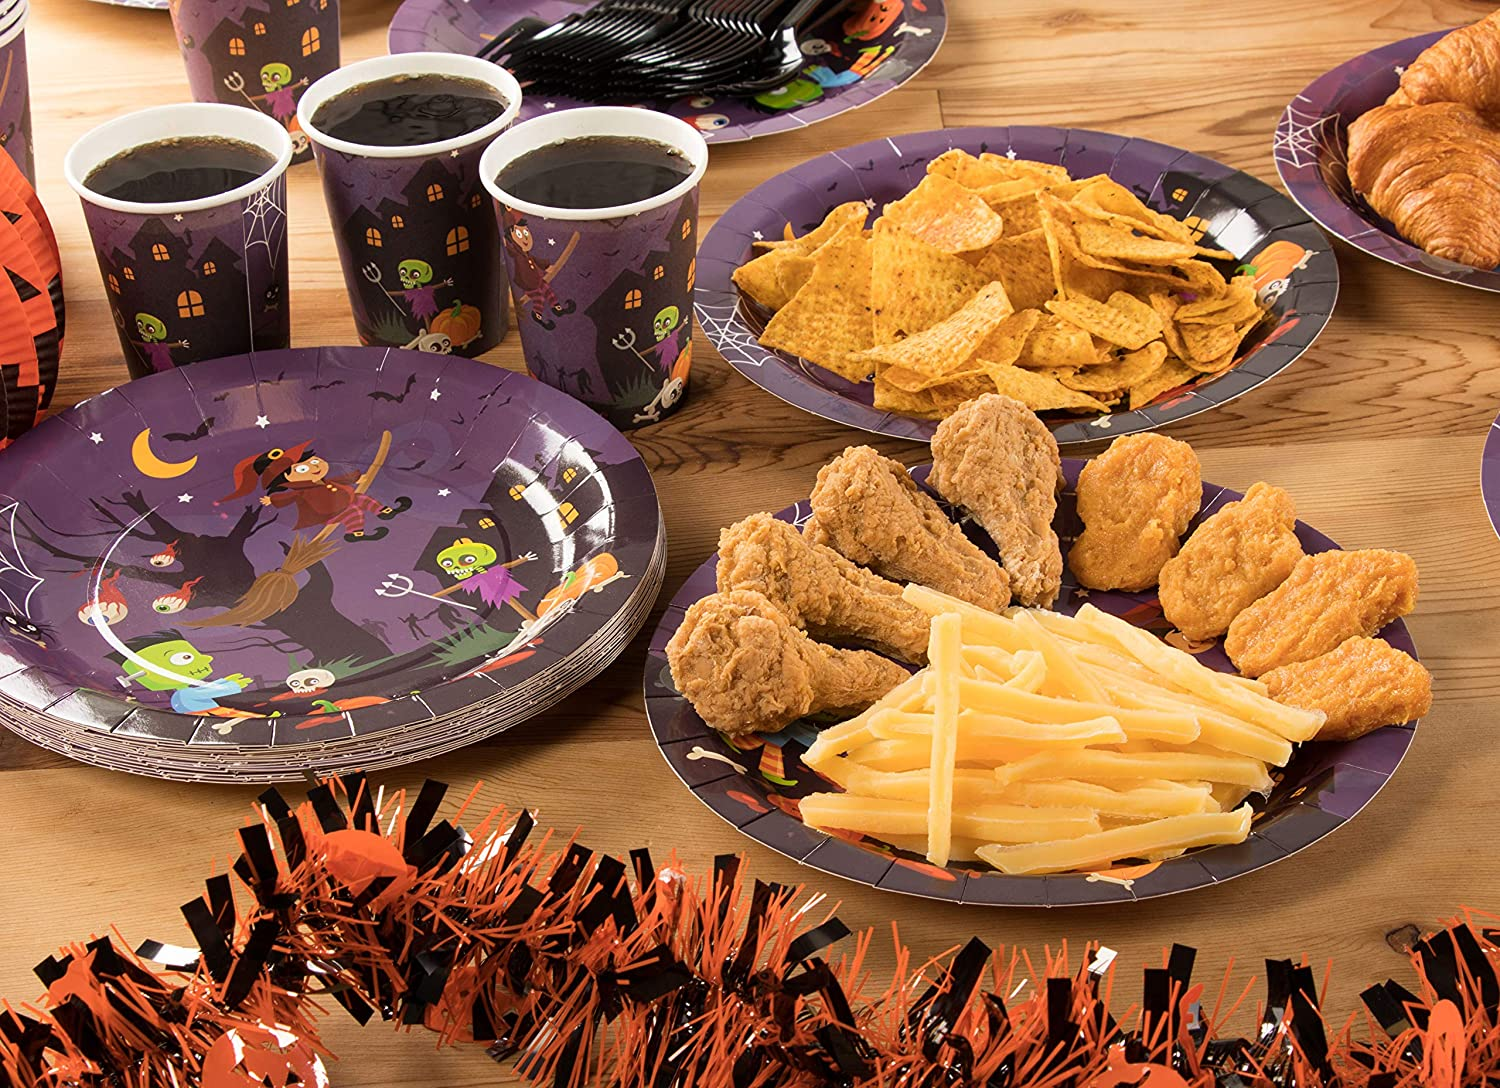 Paper Plates Black and White Party Supplies Napkins Disposable Dinnerware Set Forks Serves 24 Cups for Halloween Party Spoons Includes Plastic Knives